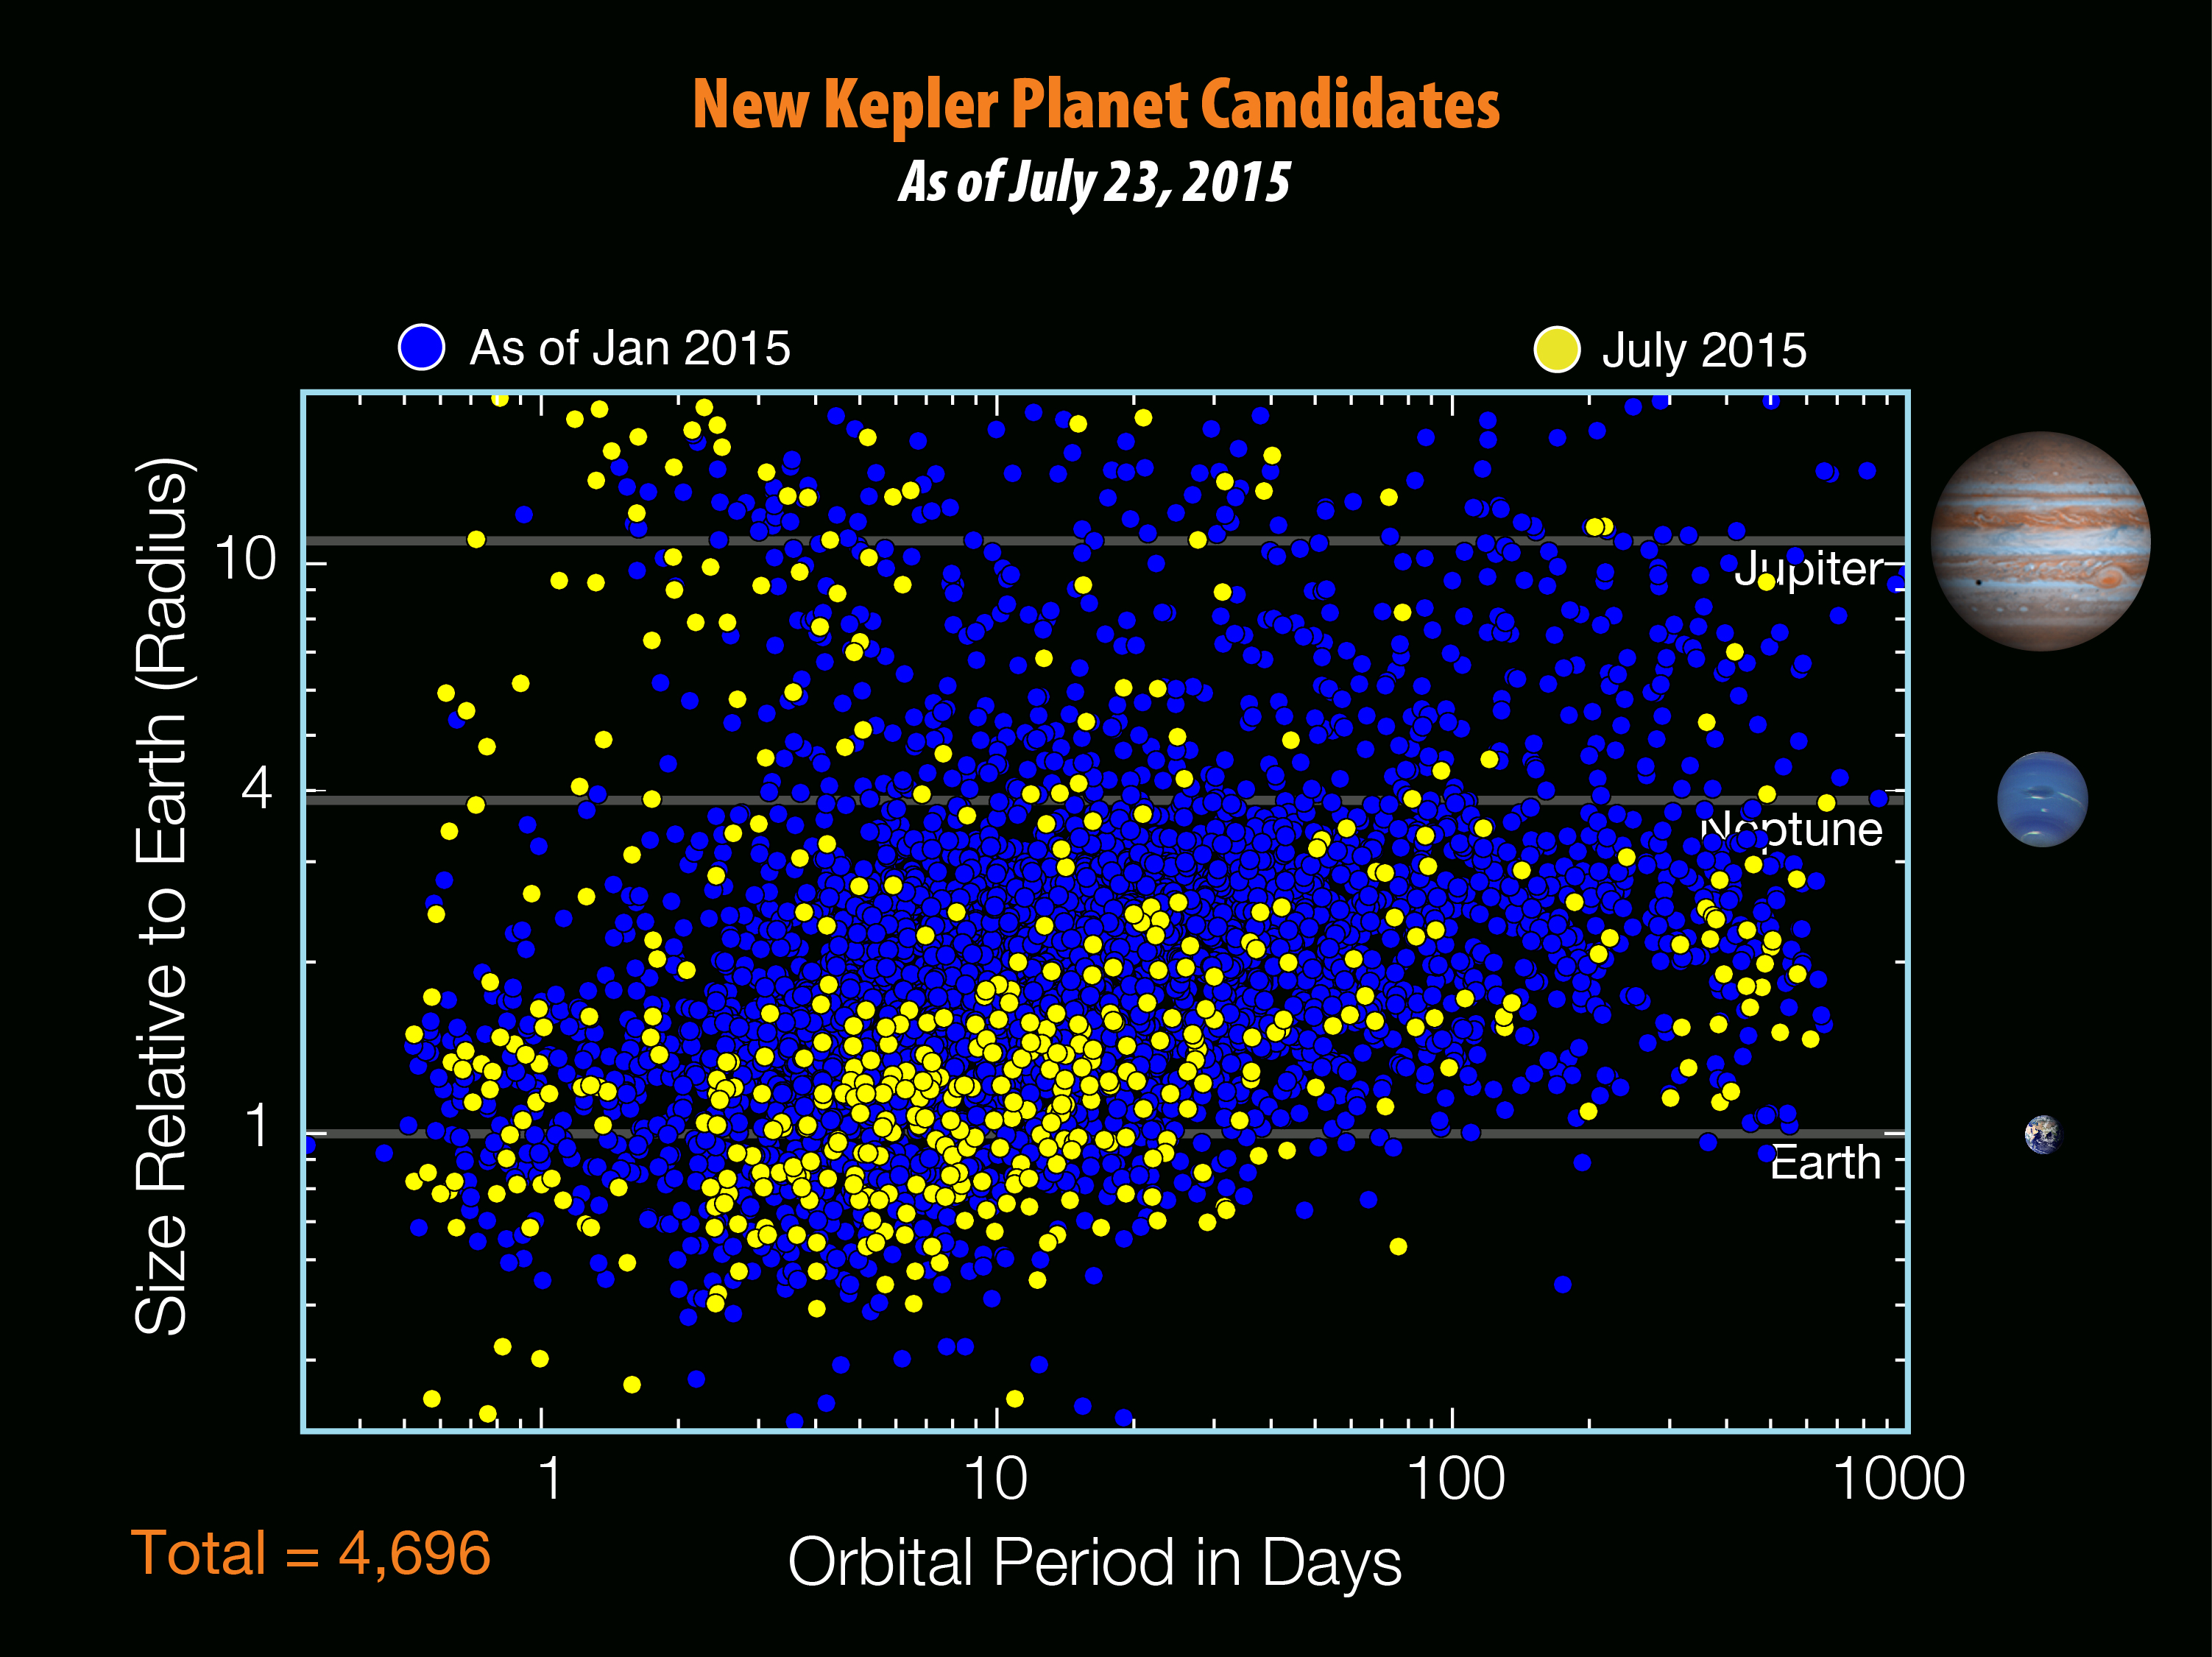 There are 4,696 planet candidates now known with the release of the seventh Kepler planet candidate catalog - an increase of 521 since the release of the previous catalog in January 2015. (NASA/W. Stenzel)